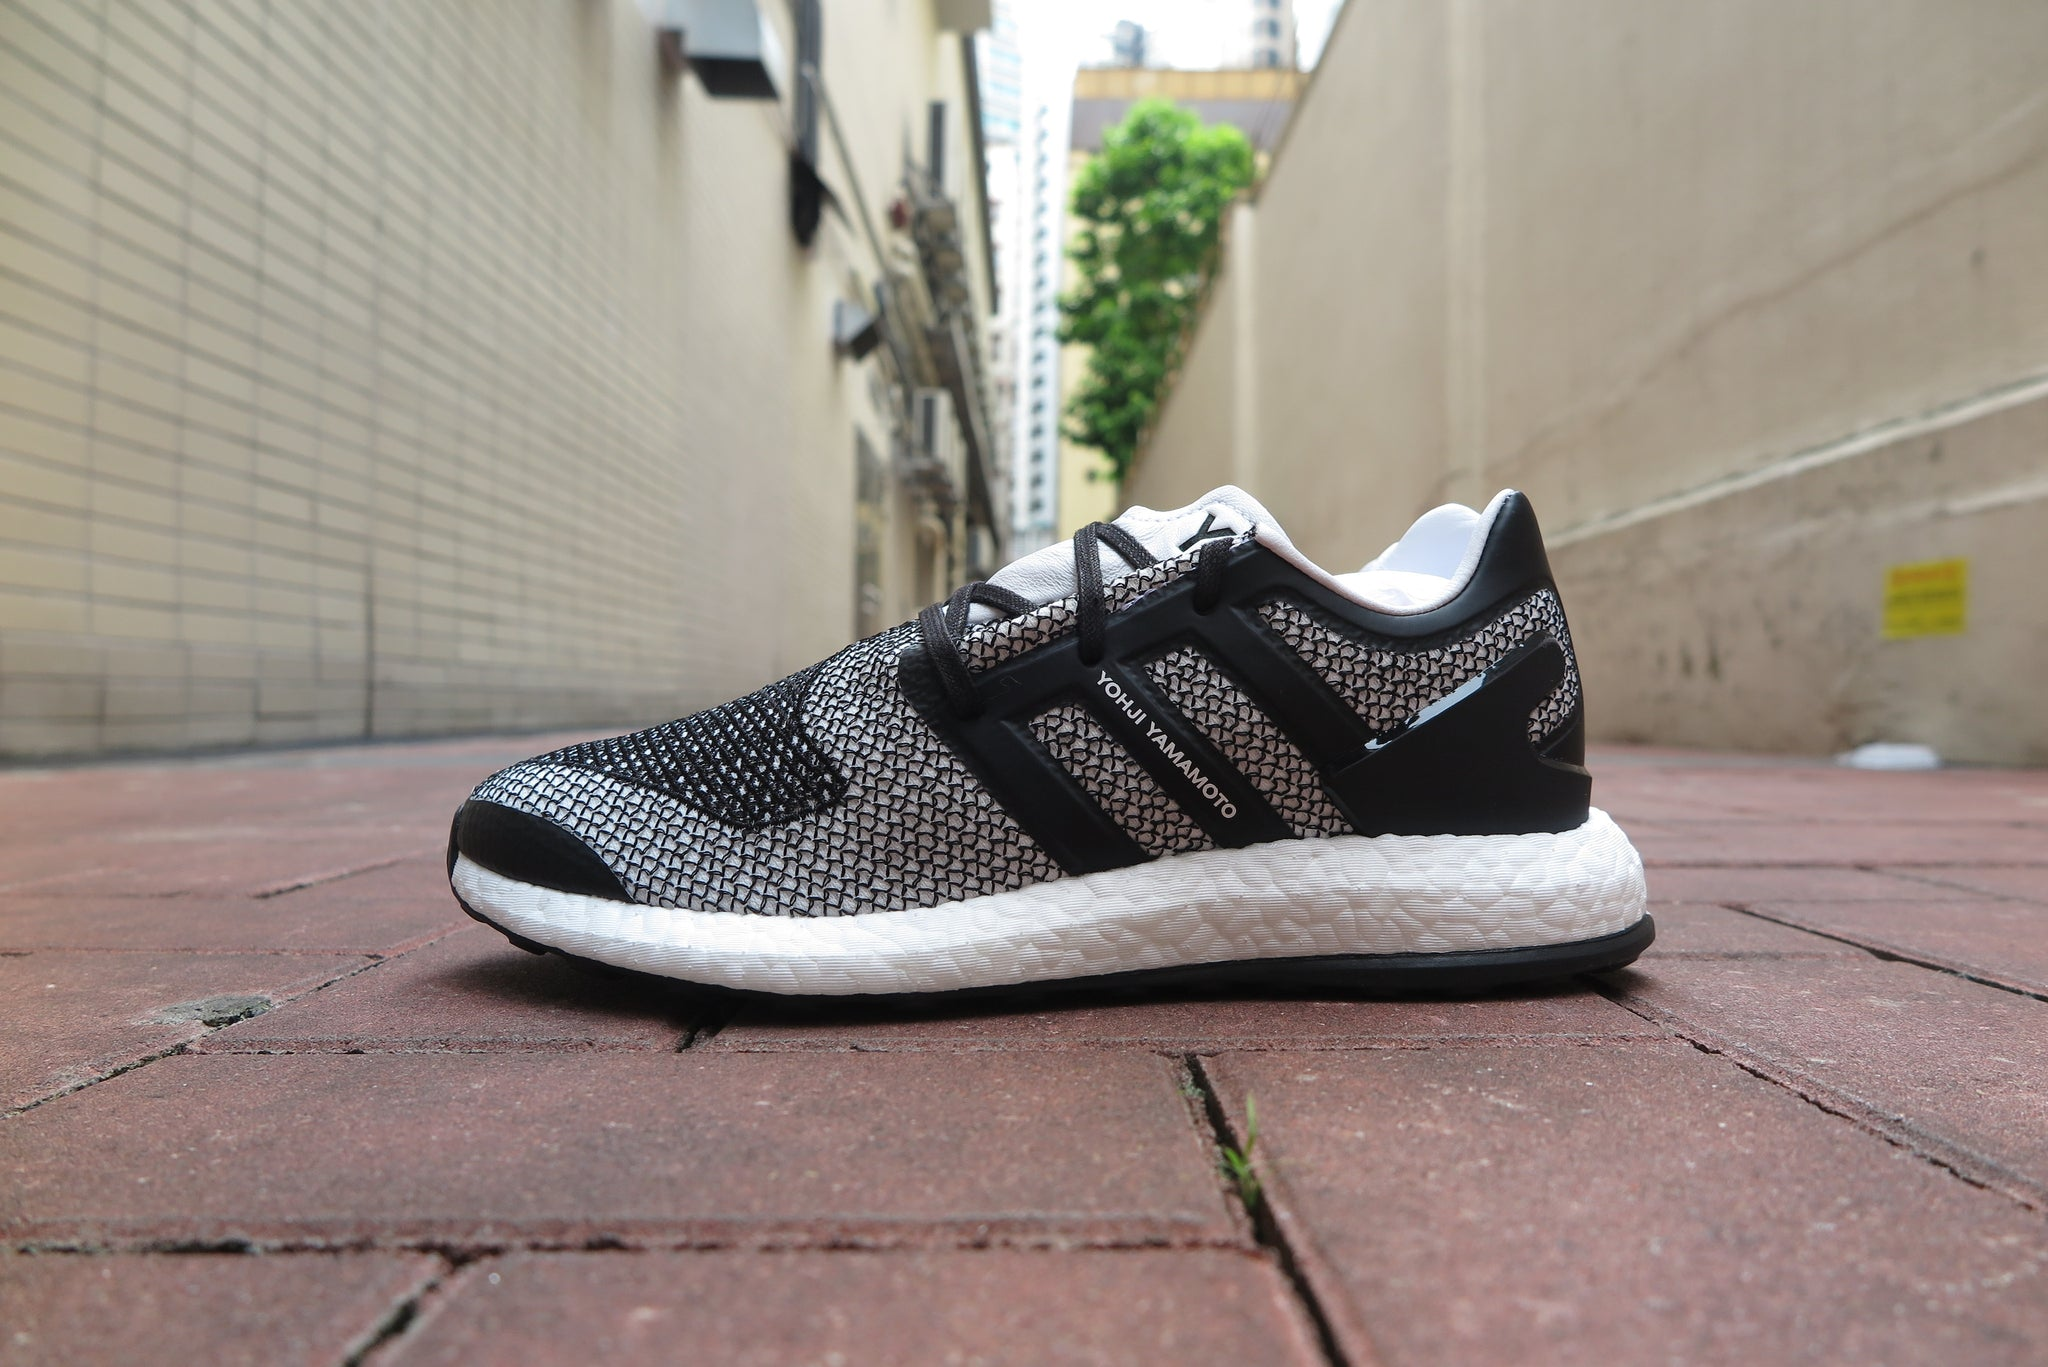 adidas Y-3 Pure Boost Knit - Footwear White/Core Black #CP9888-Sneakers-Navy Selected Shop